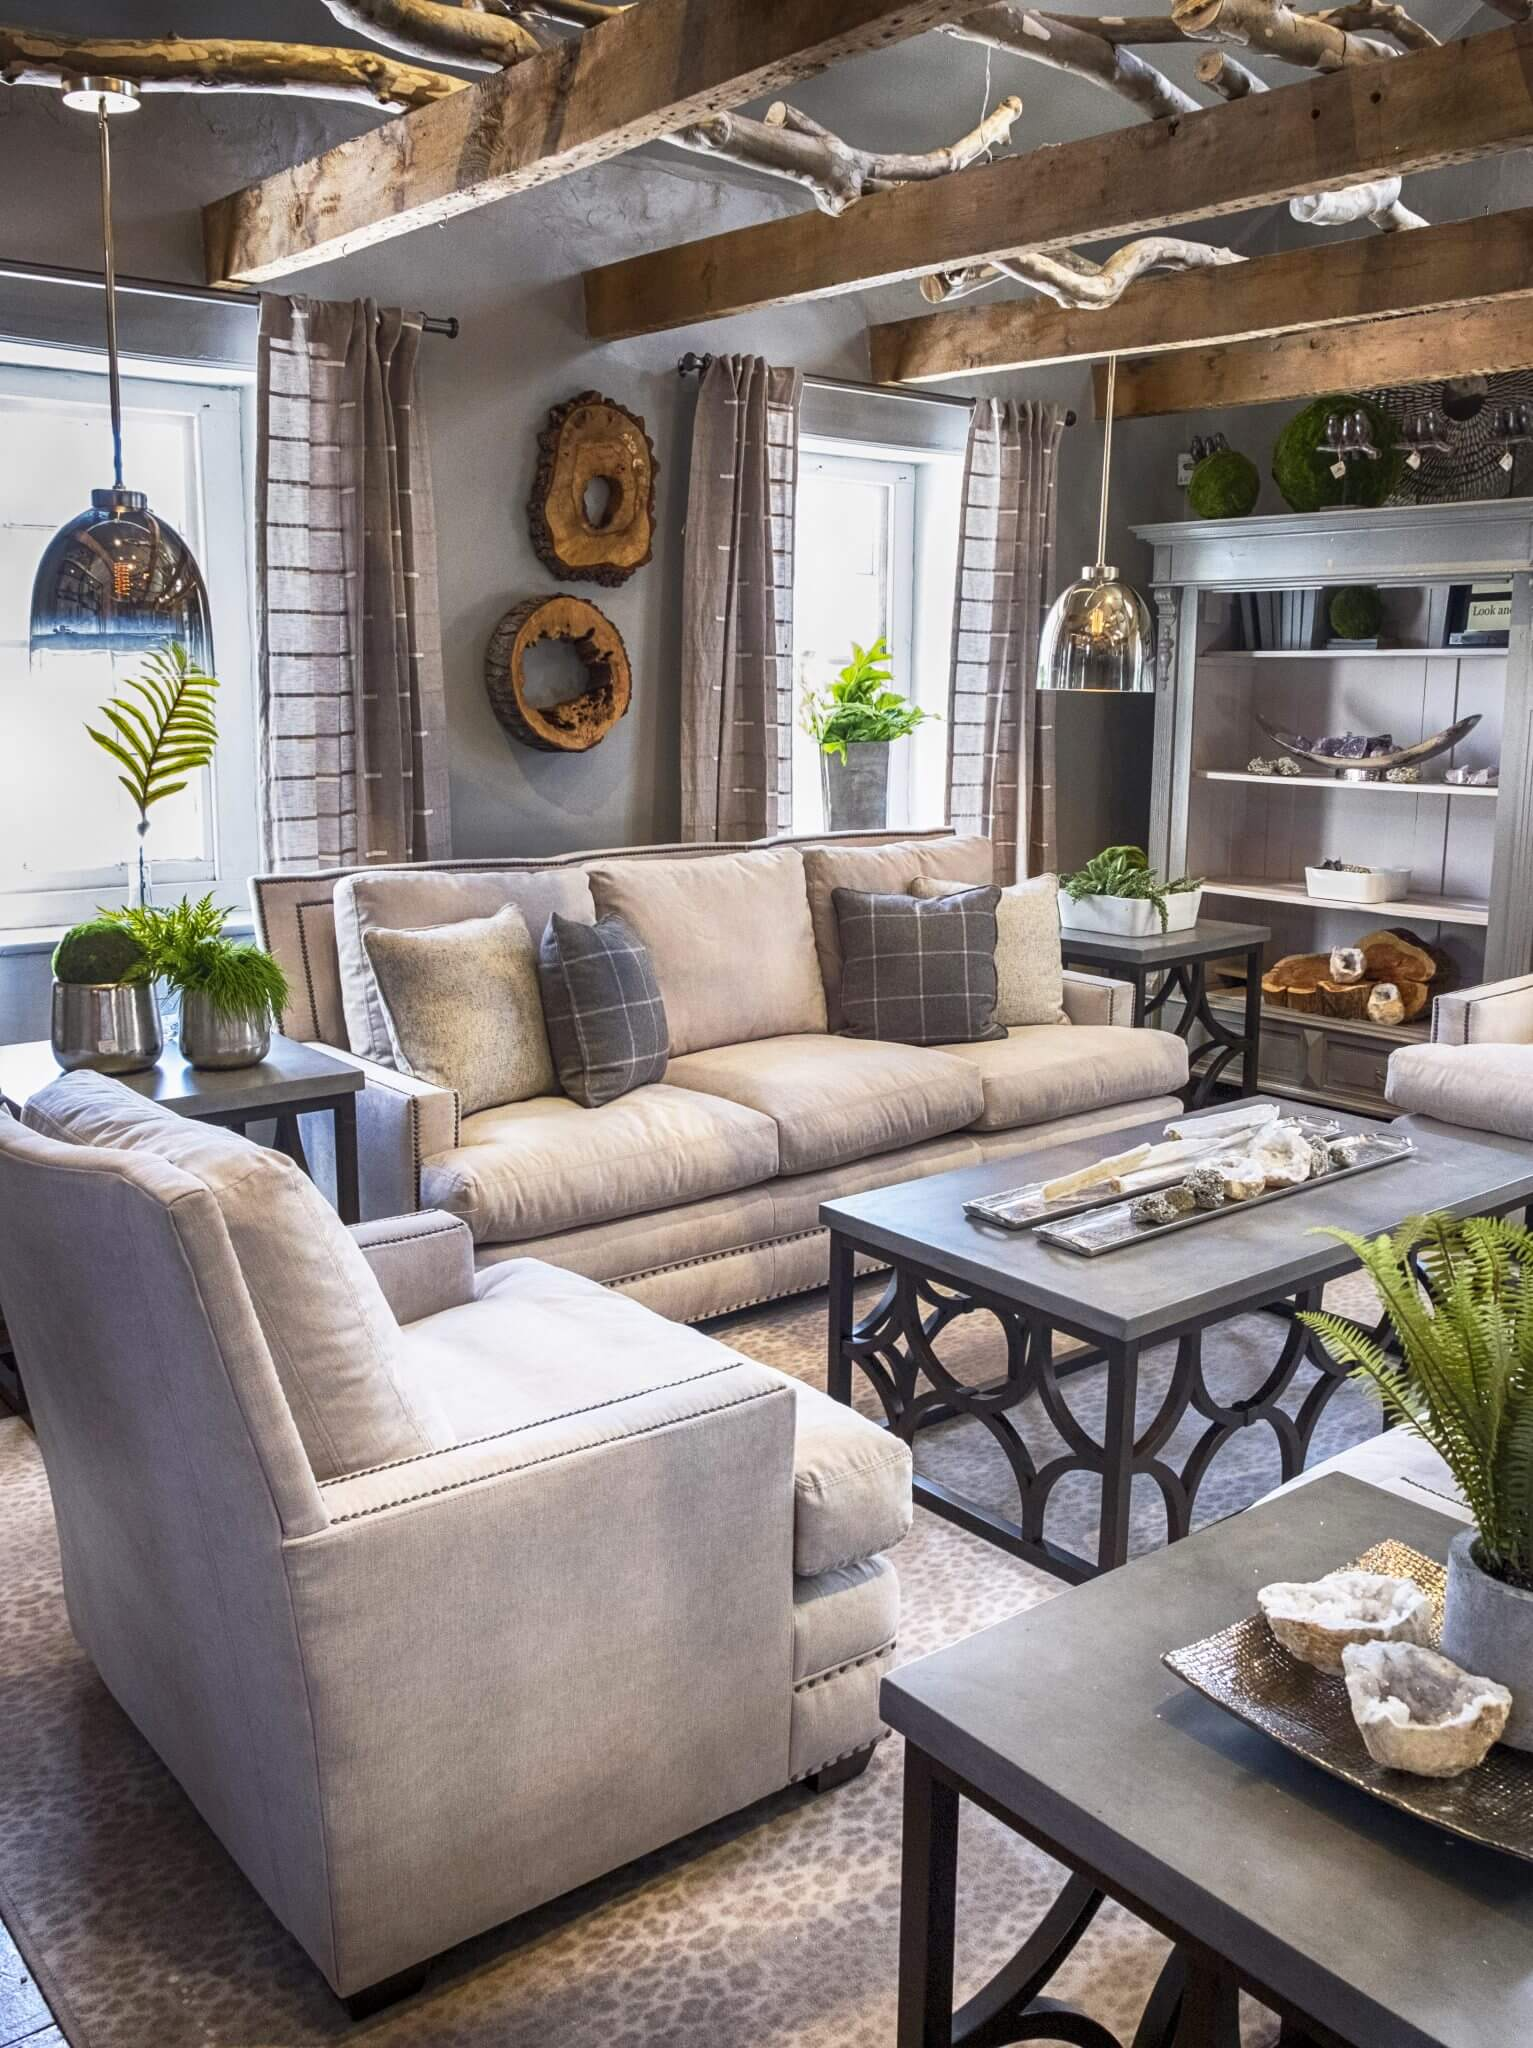 Bucks County Home Decor Store Affordable Stylish Furniture